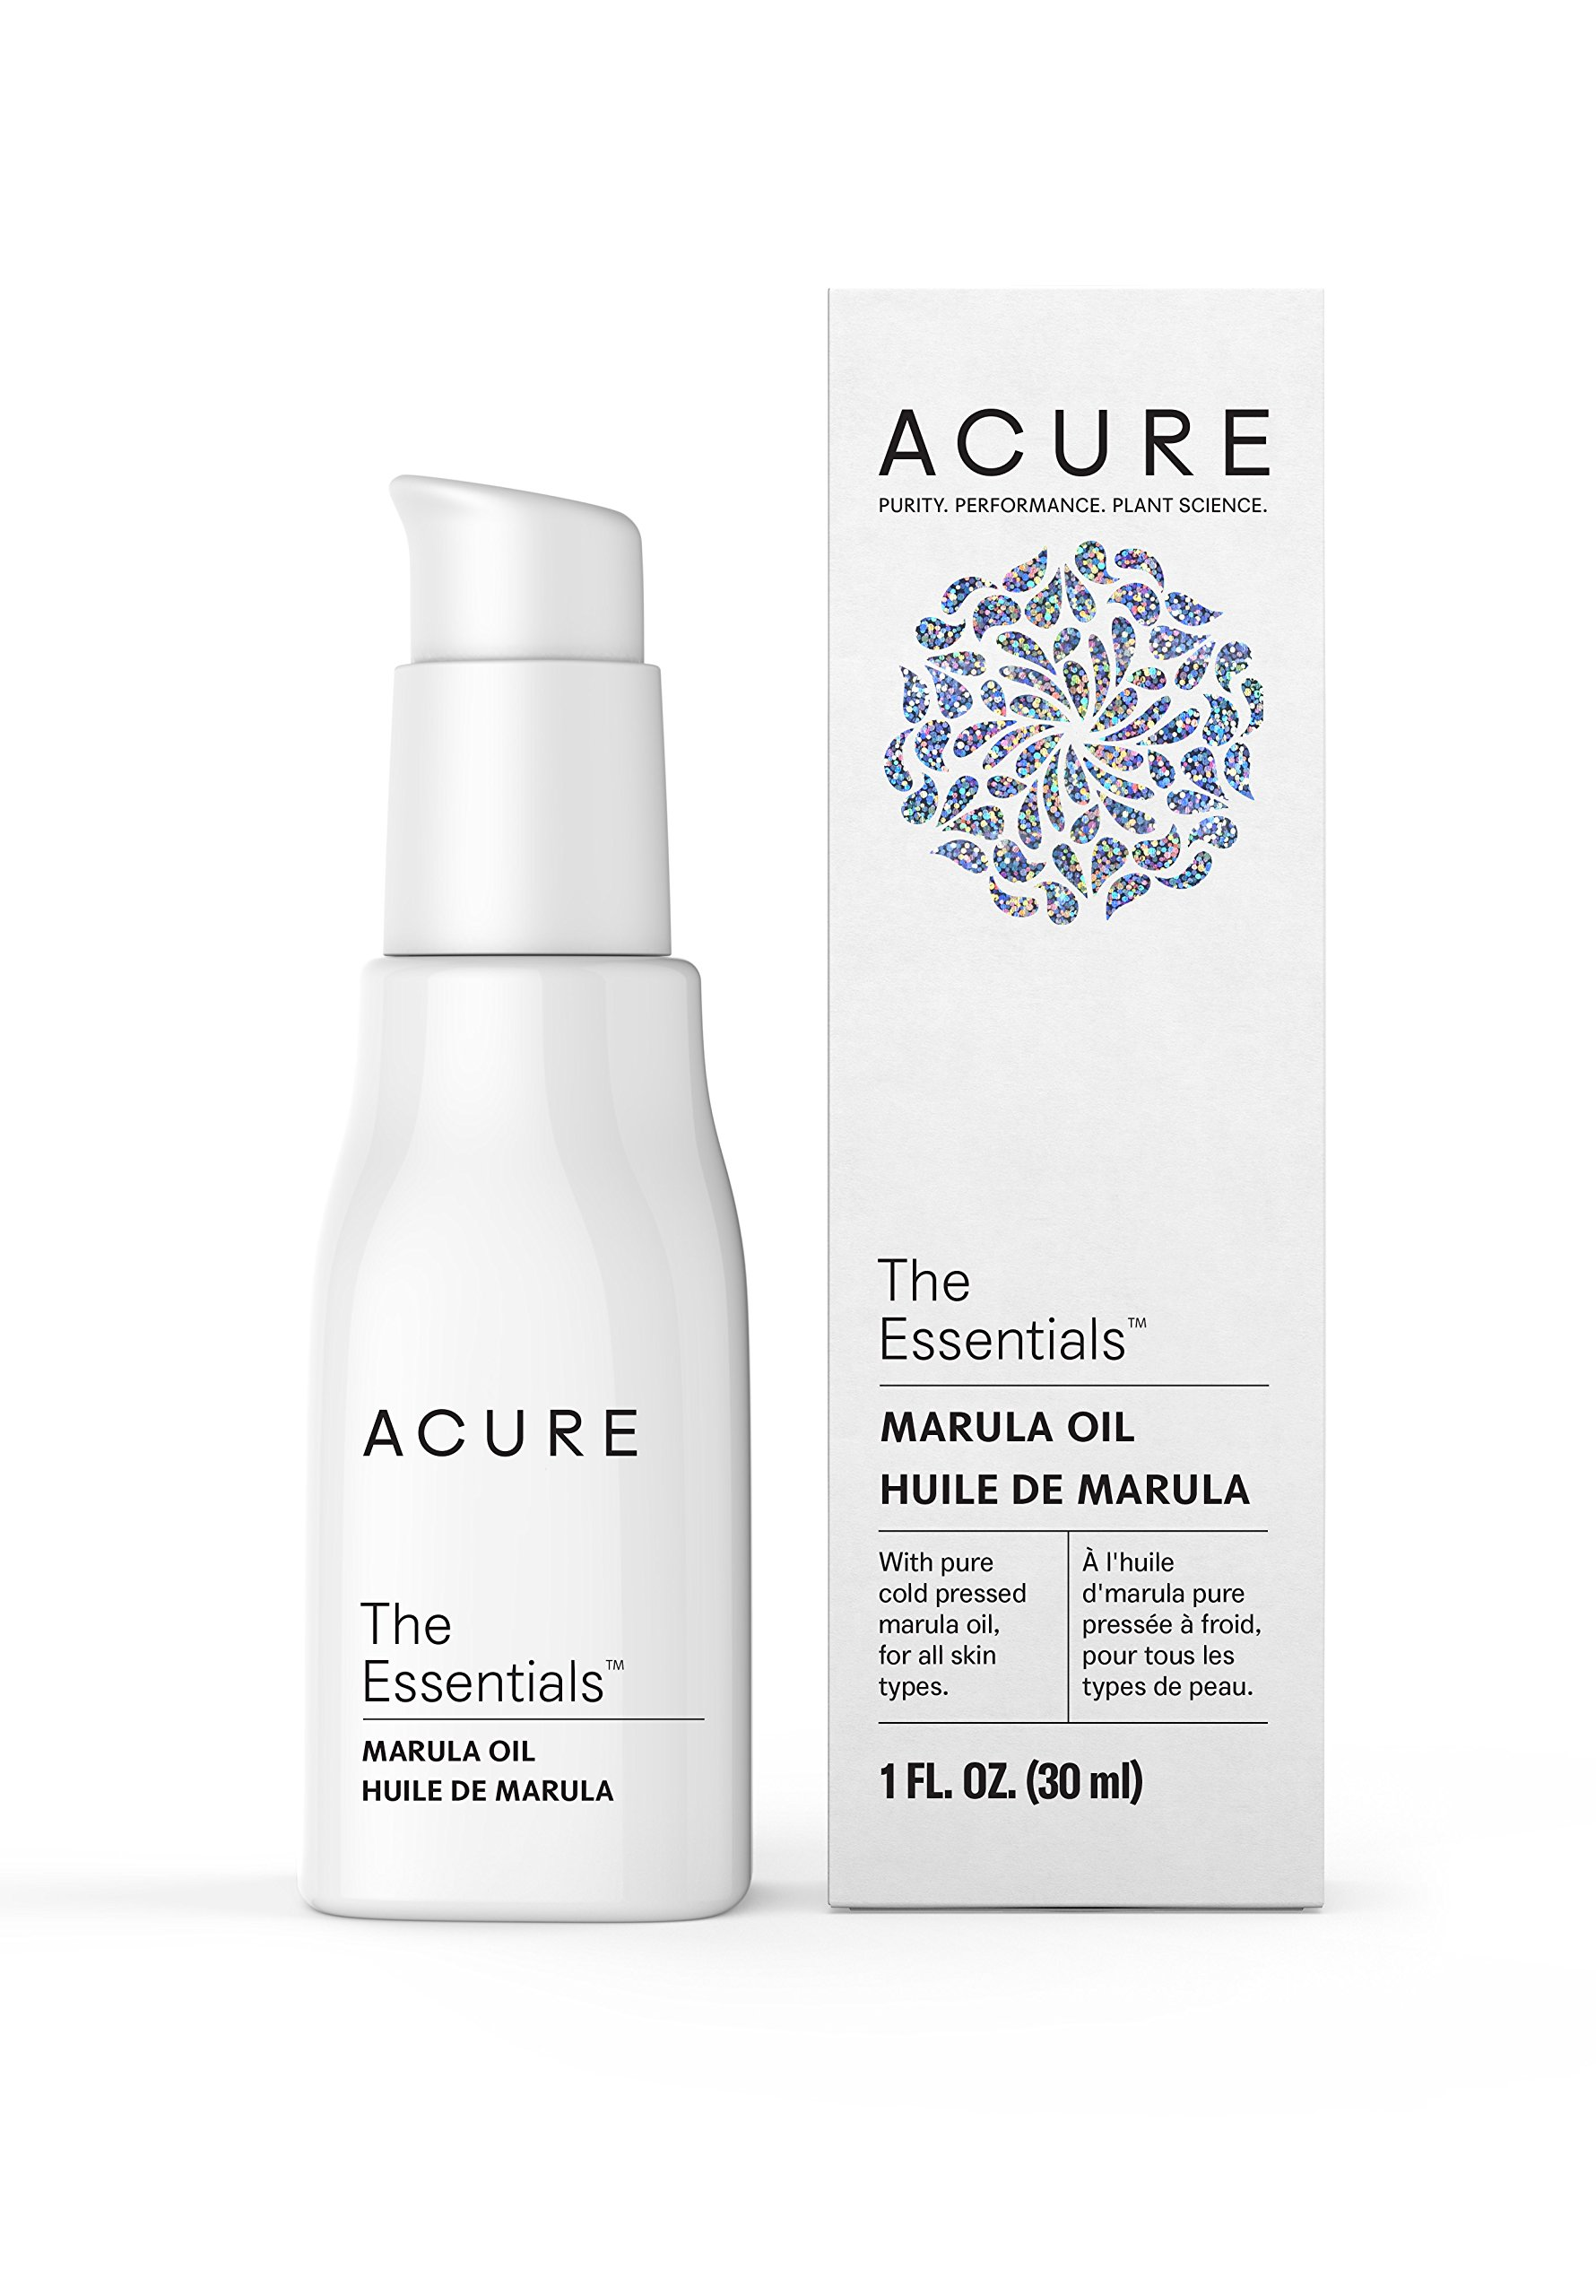 Acure, The Essentials Marula Oil, 1 Fluid Ounce by Acure